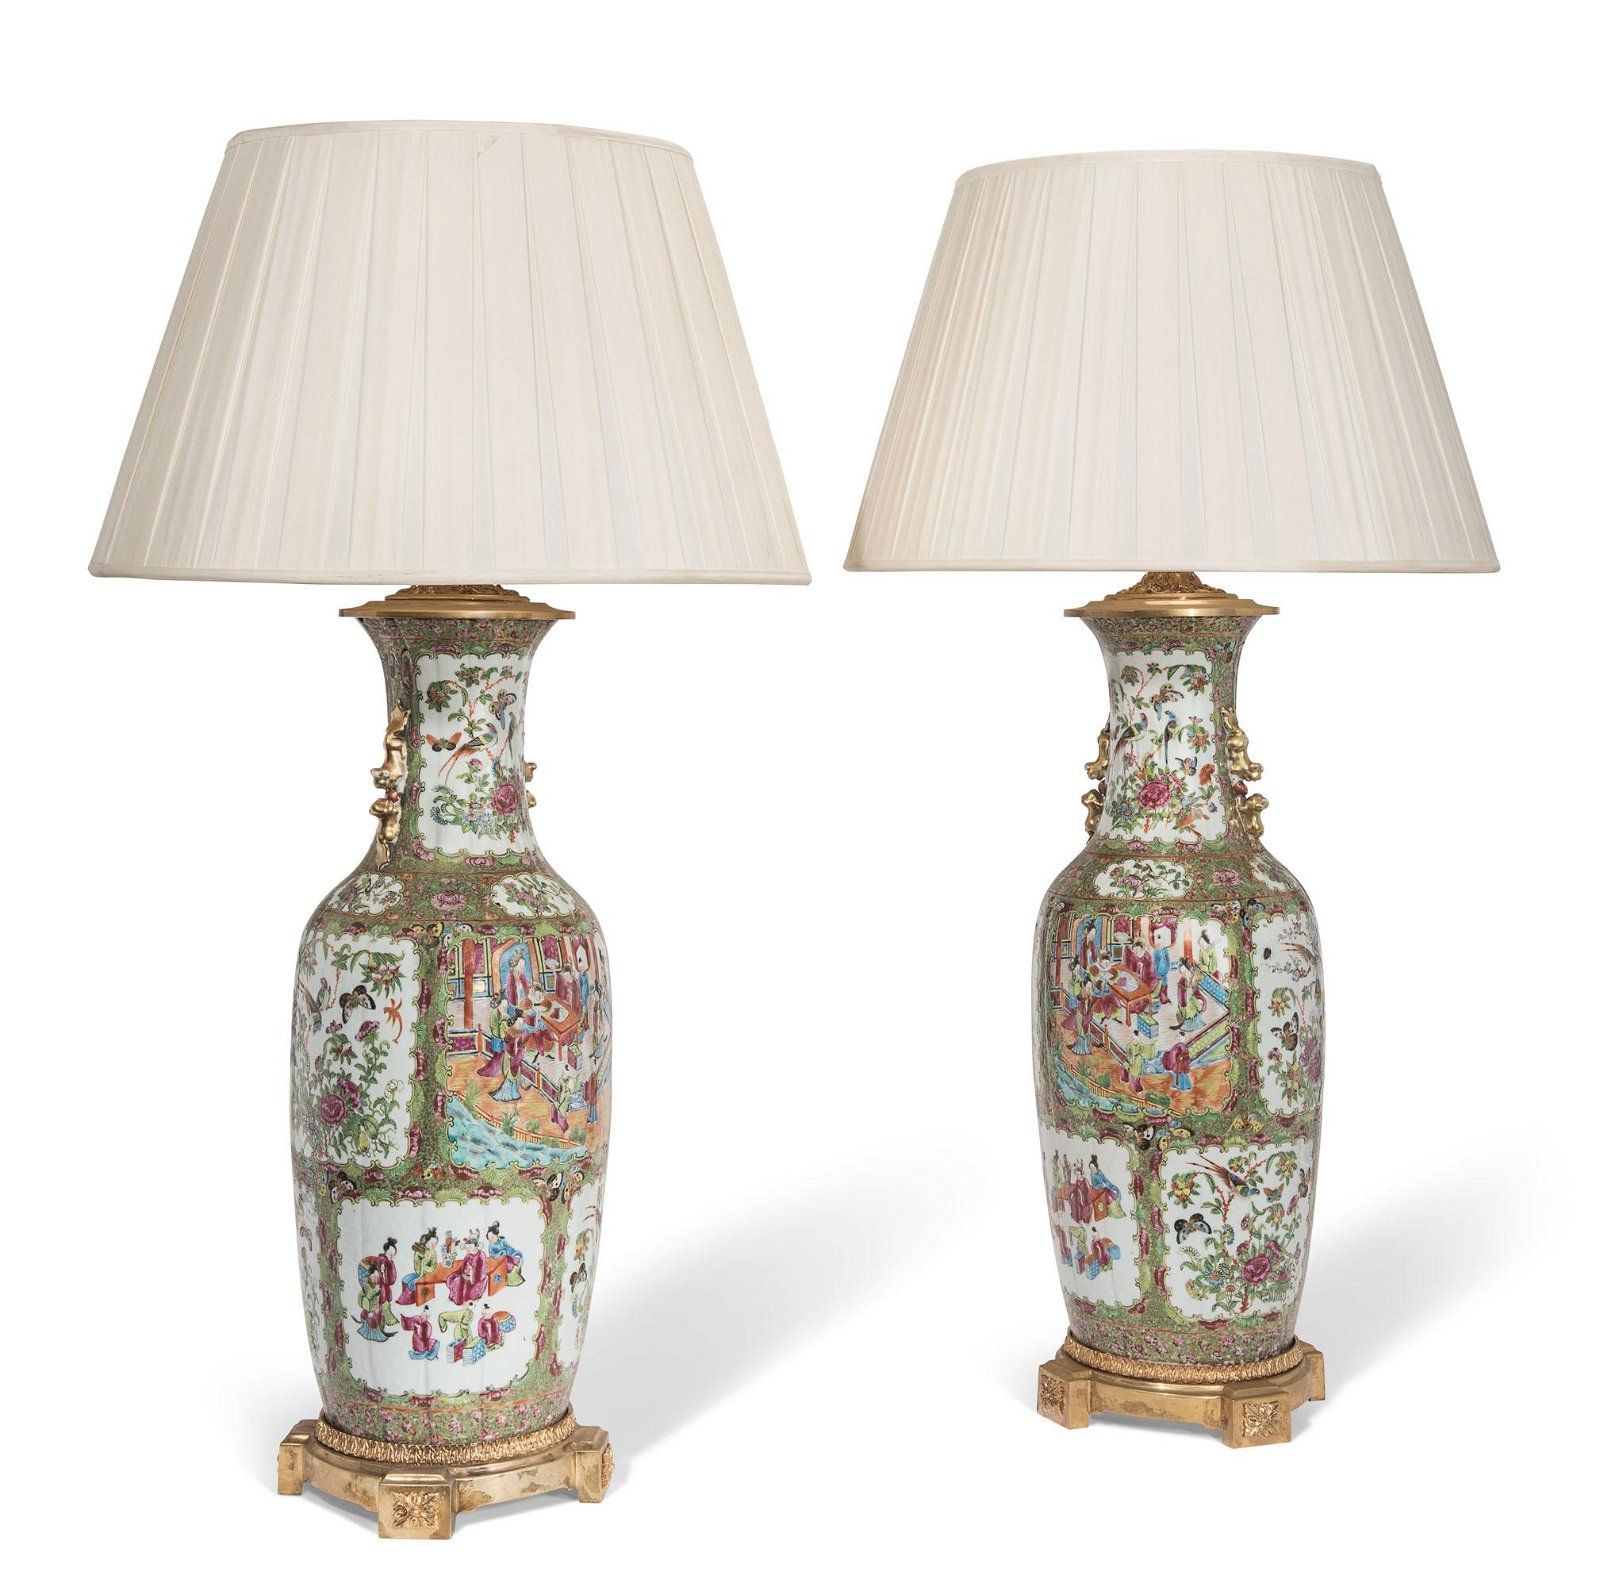 A PAIR OF CHINESE PORCELAIN FAMILLE ROSE VASES, MOUNTED